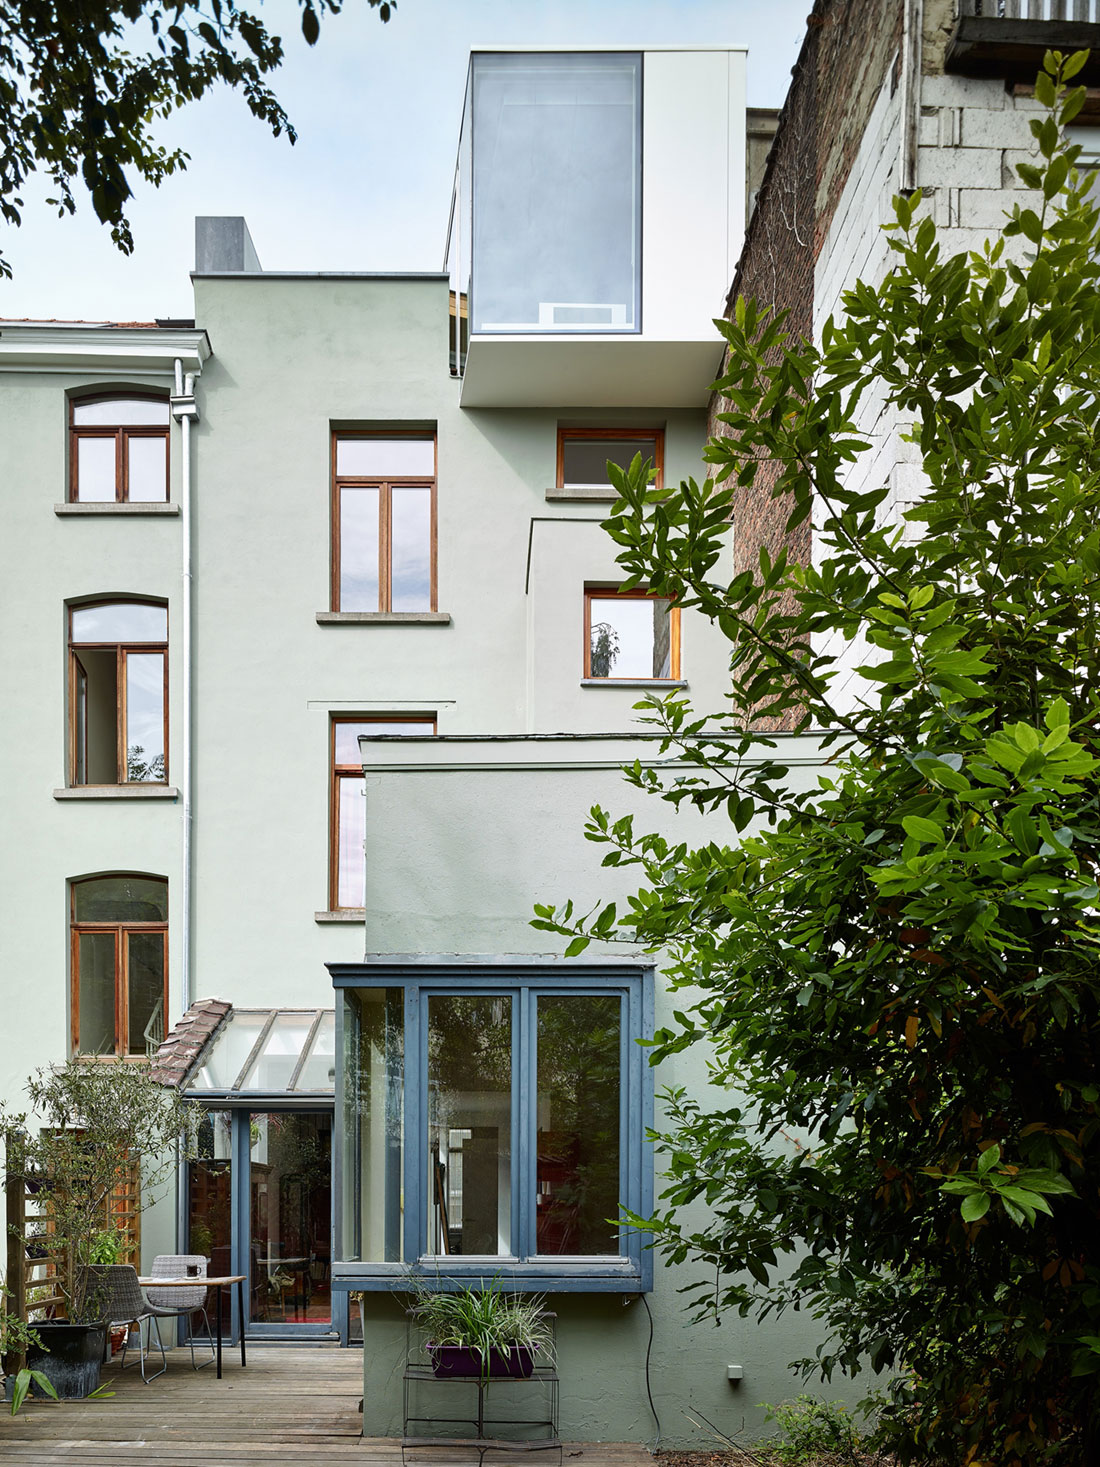 Home in Schaerbeek by Martens/Brunet Architects (2)